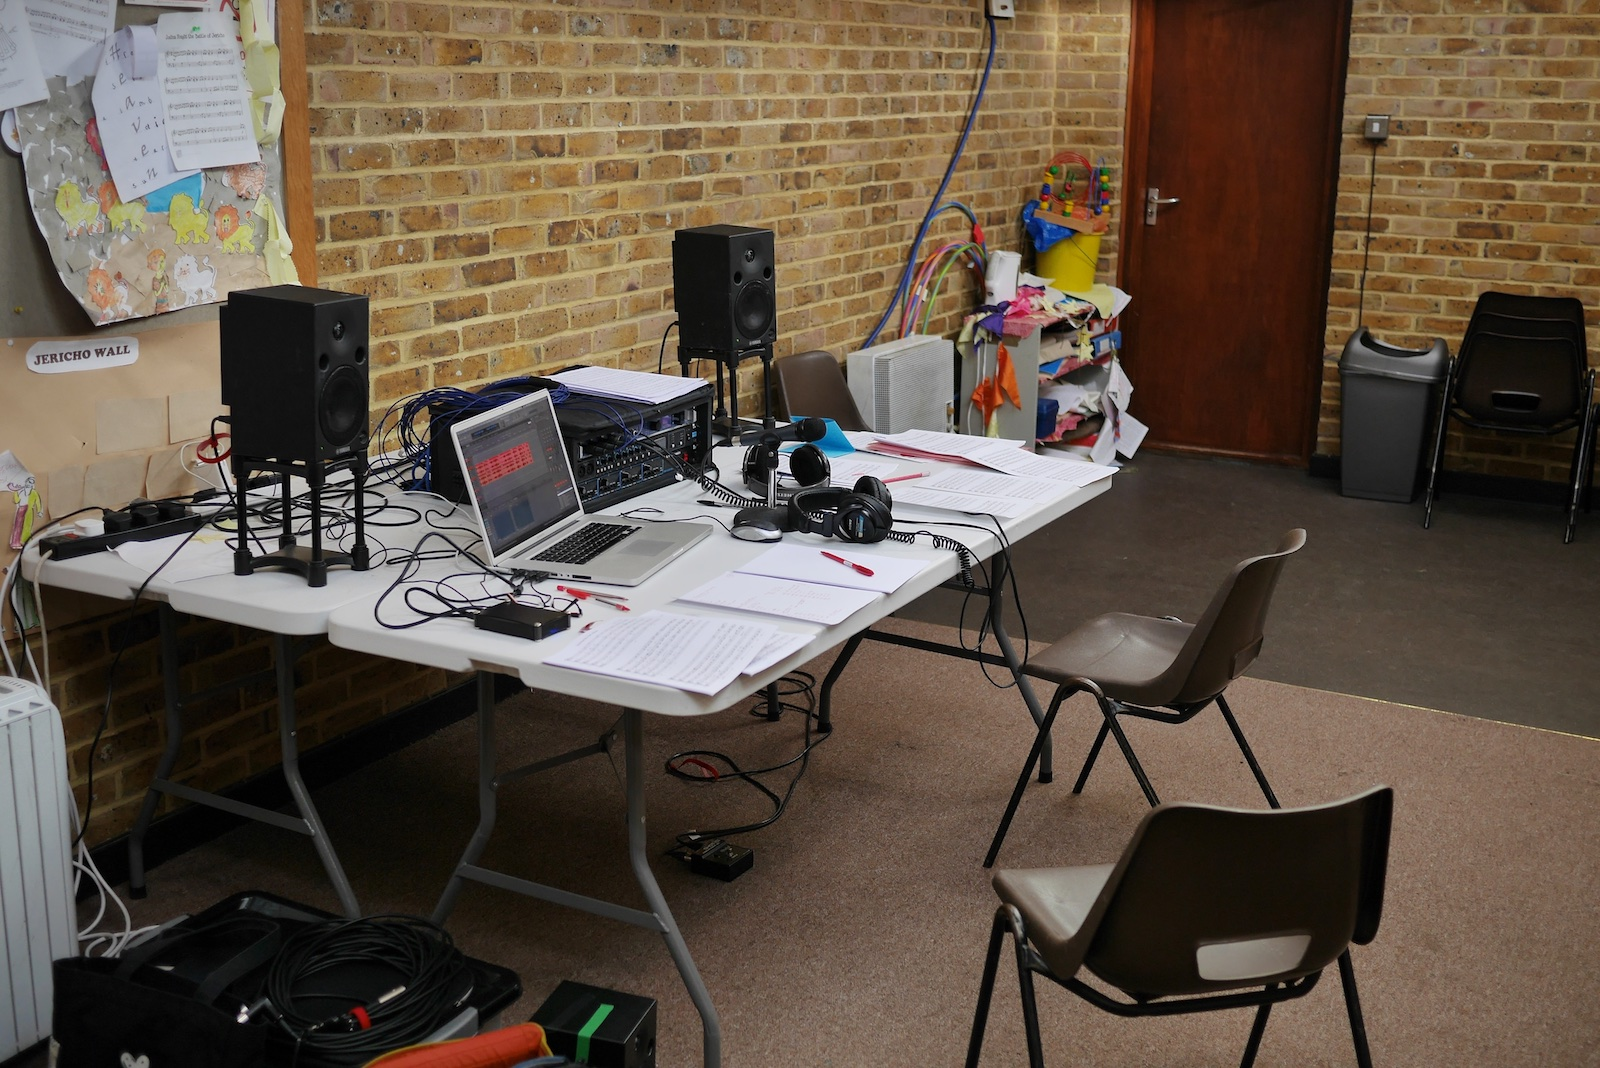 Photo of recording equipment on a table in a room used for sunday school sessions